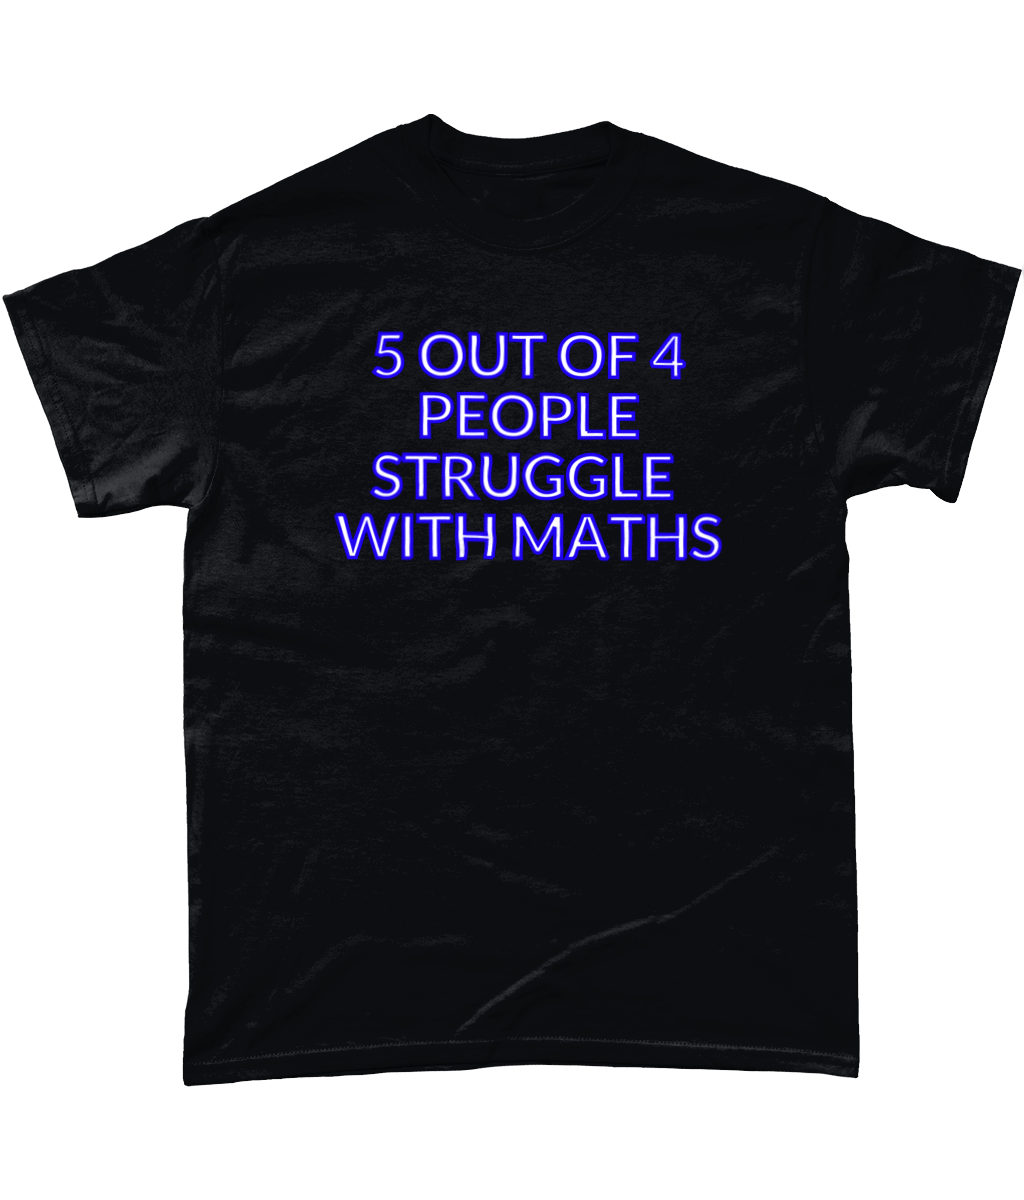 5 Out Of 4 People Struggle With Maths Tshirt